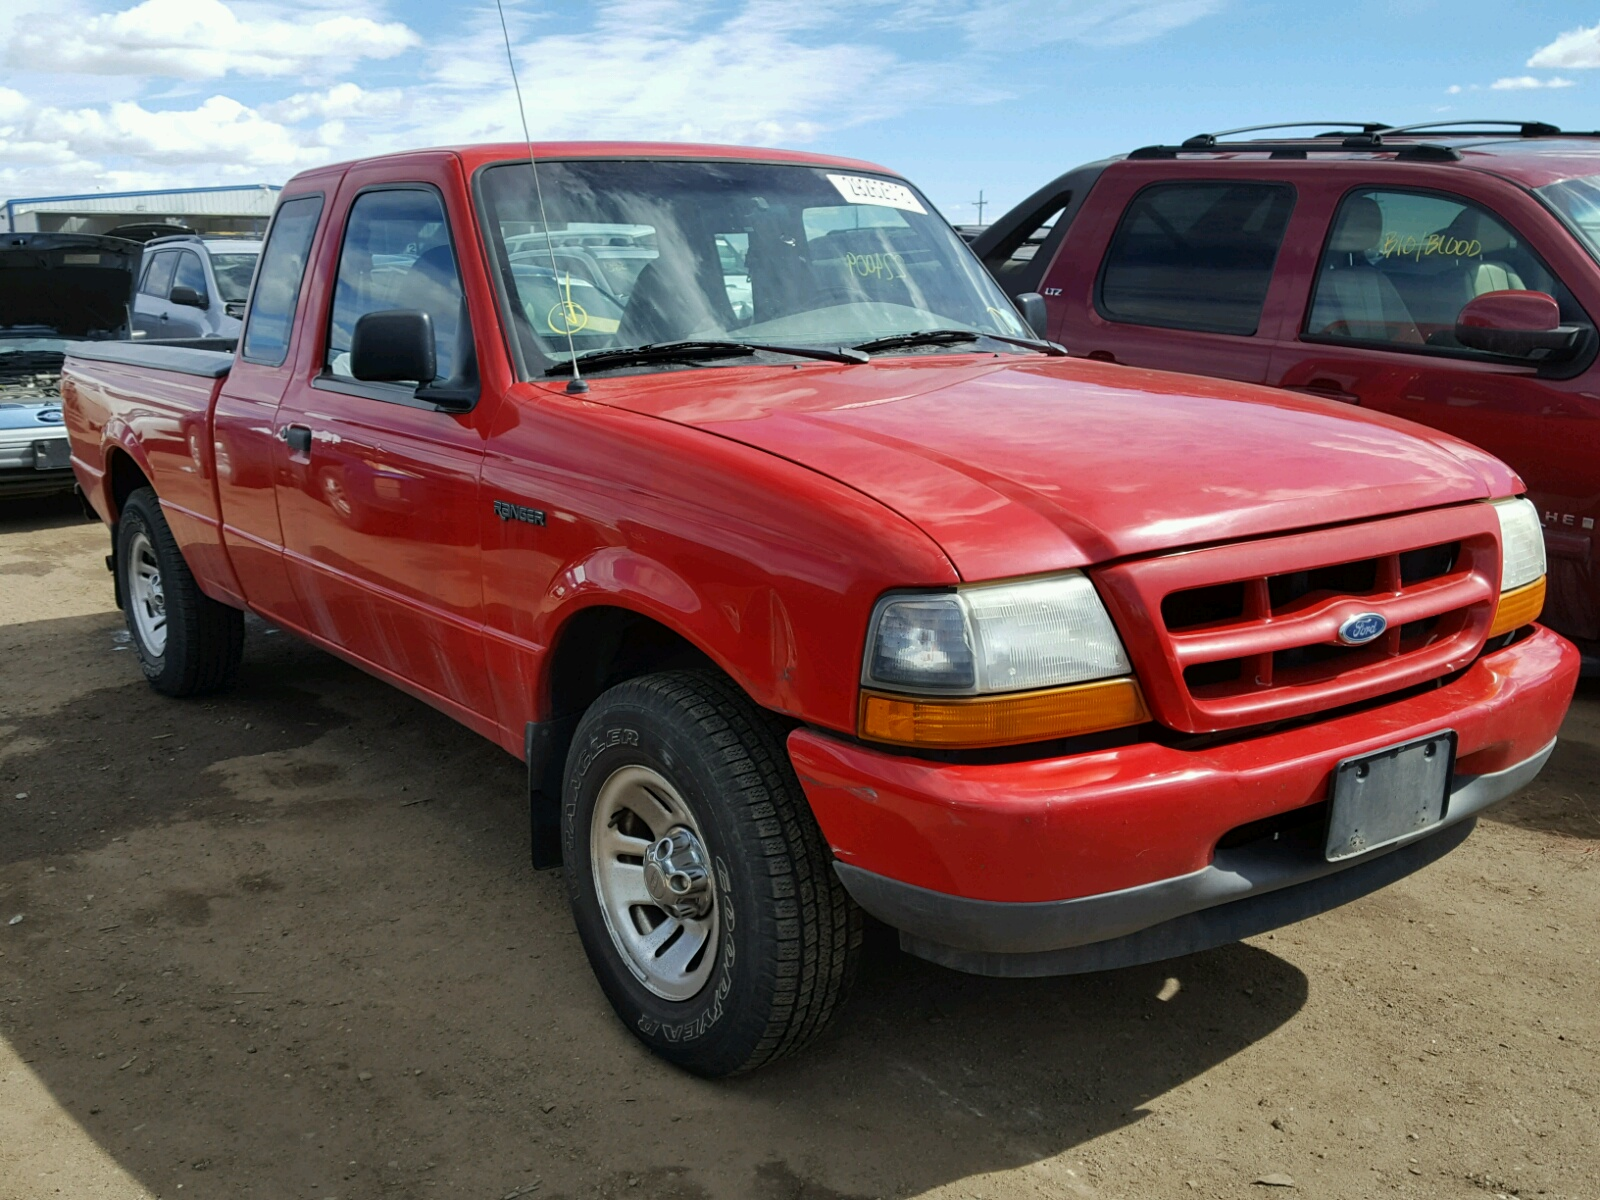 1ftyr14c1xpa42651 1999 Red Ford Ranger Sup On Sale In Co Denver 1955 F100 Value 4 Left View